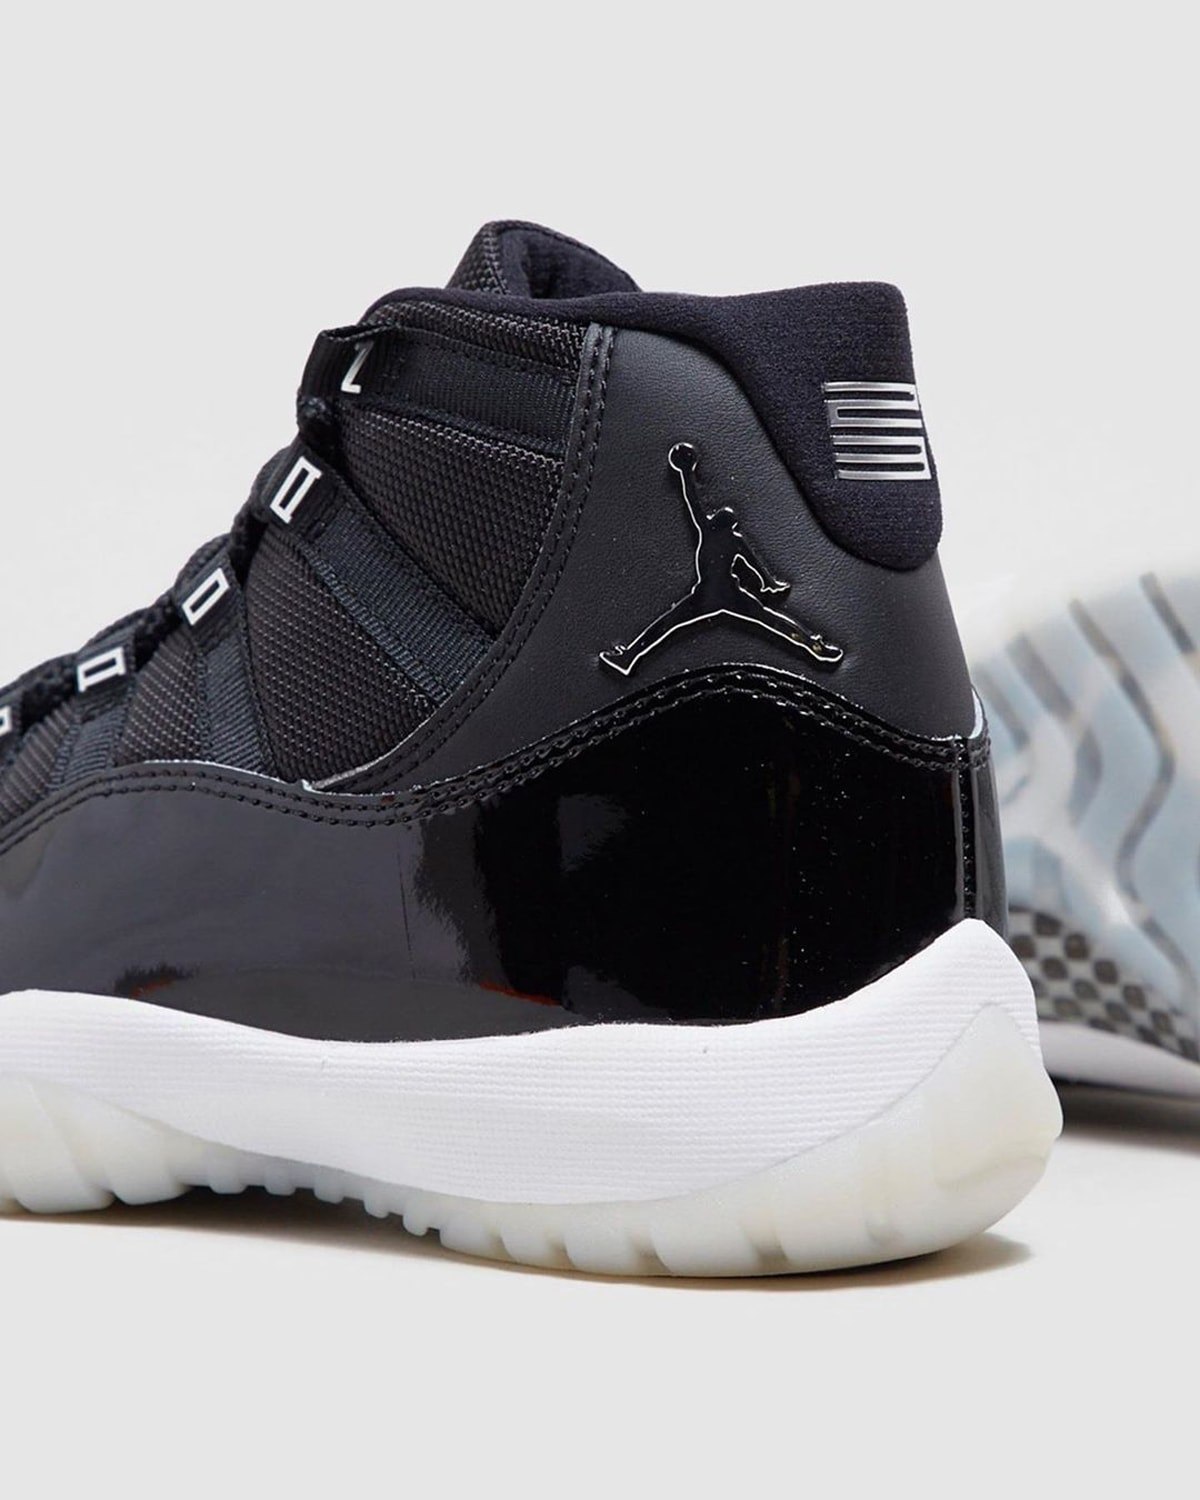 25th-anniversary-air-jordan-11-black-clear-holiday-2020-ct8012-011-release-date-3